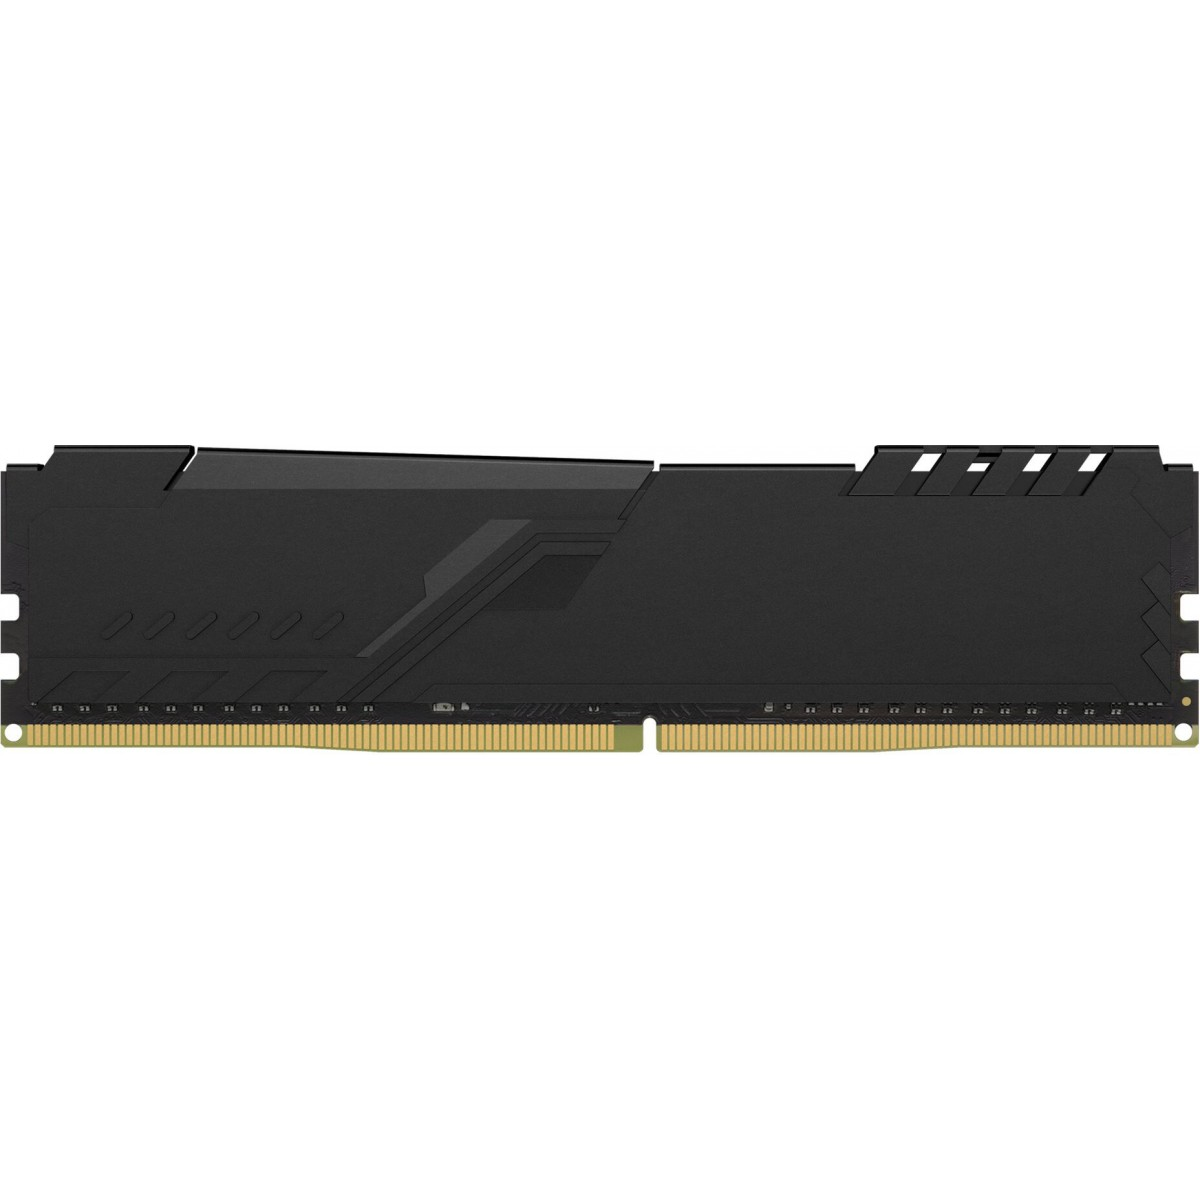 Memória DDR4 Kingston HyperX Fury, 8GB 3000MHz, Black, HX430C15FB3/8